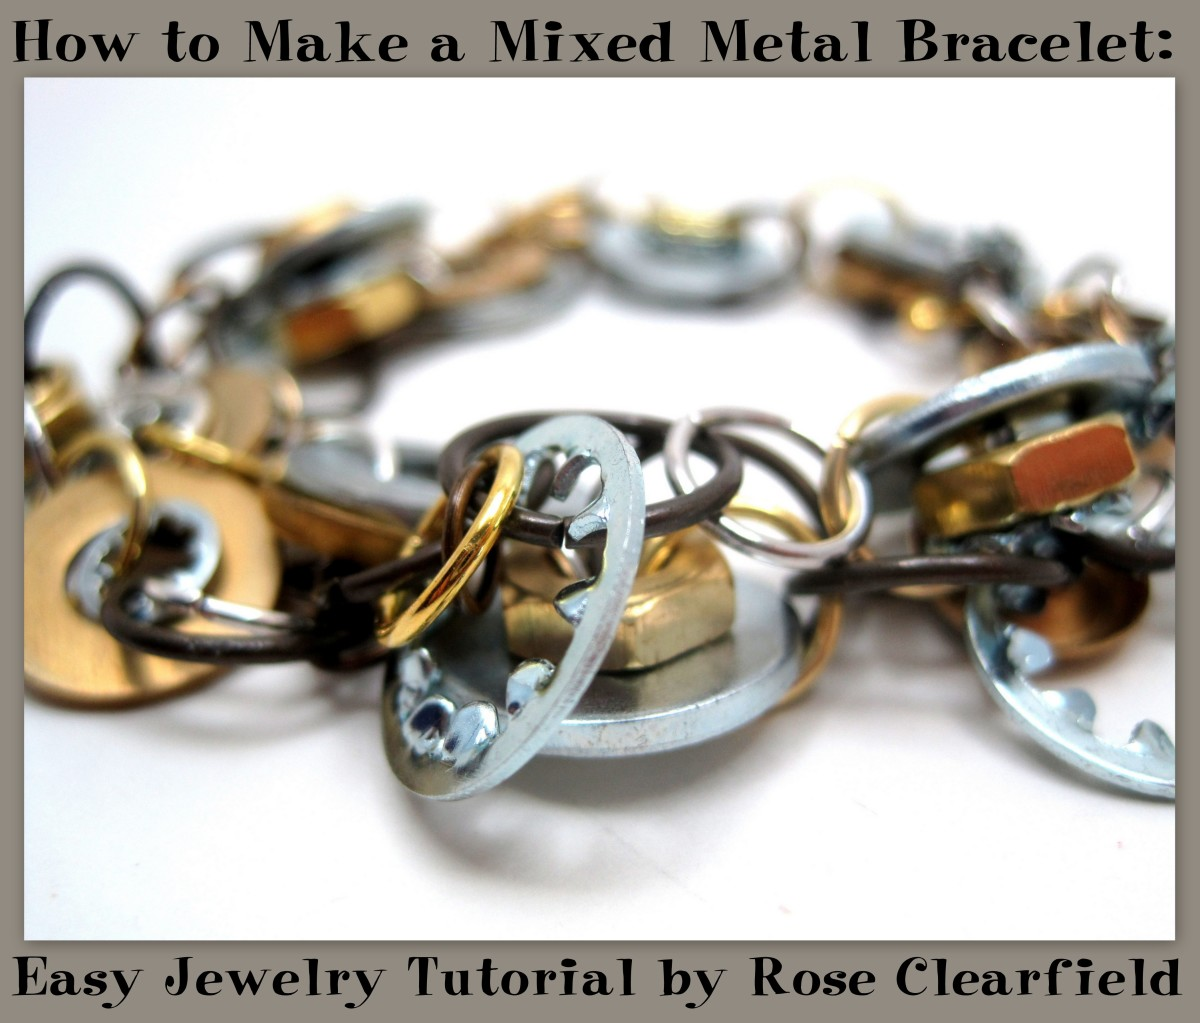 How to Make a Mixed Metal Bracelet: Easy Jewelry Tutorial